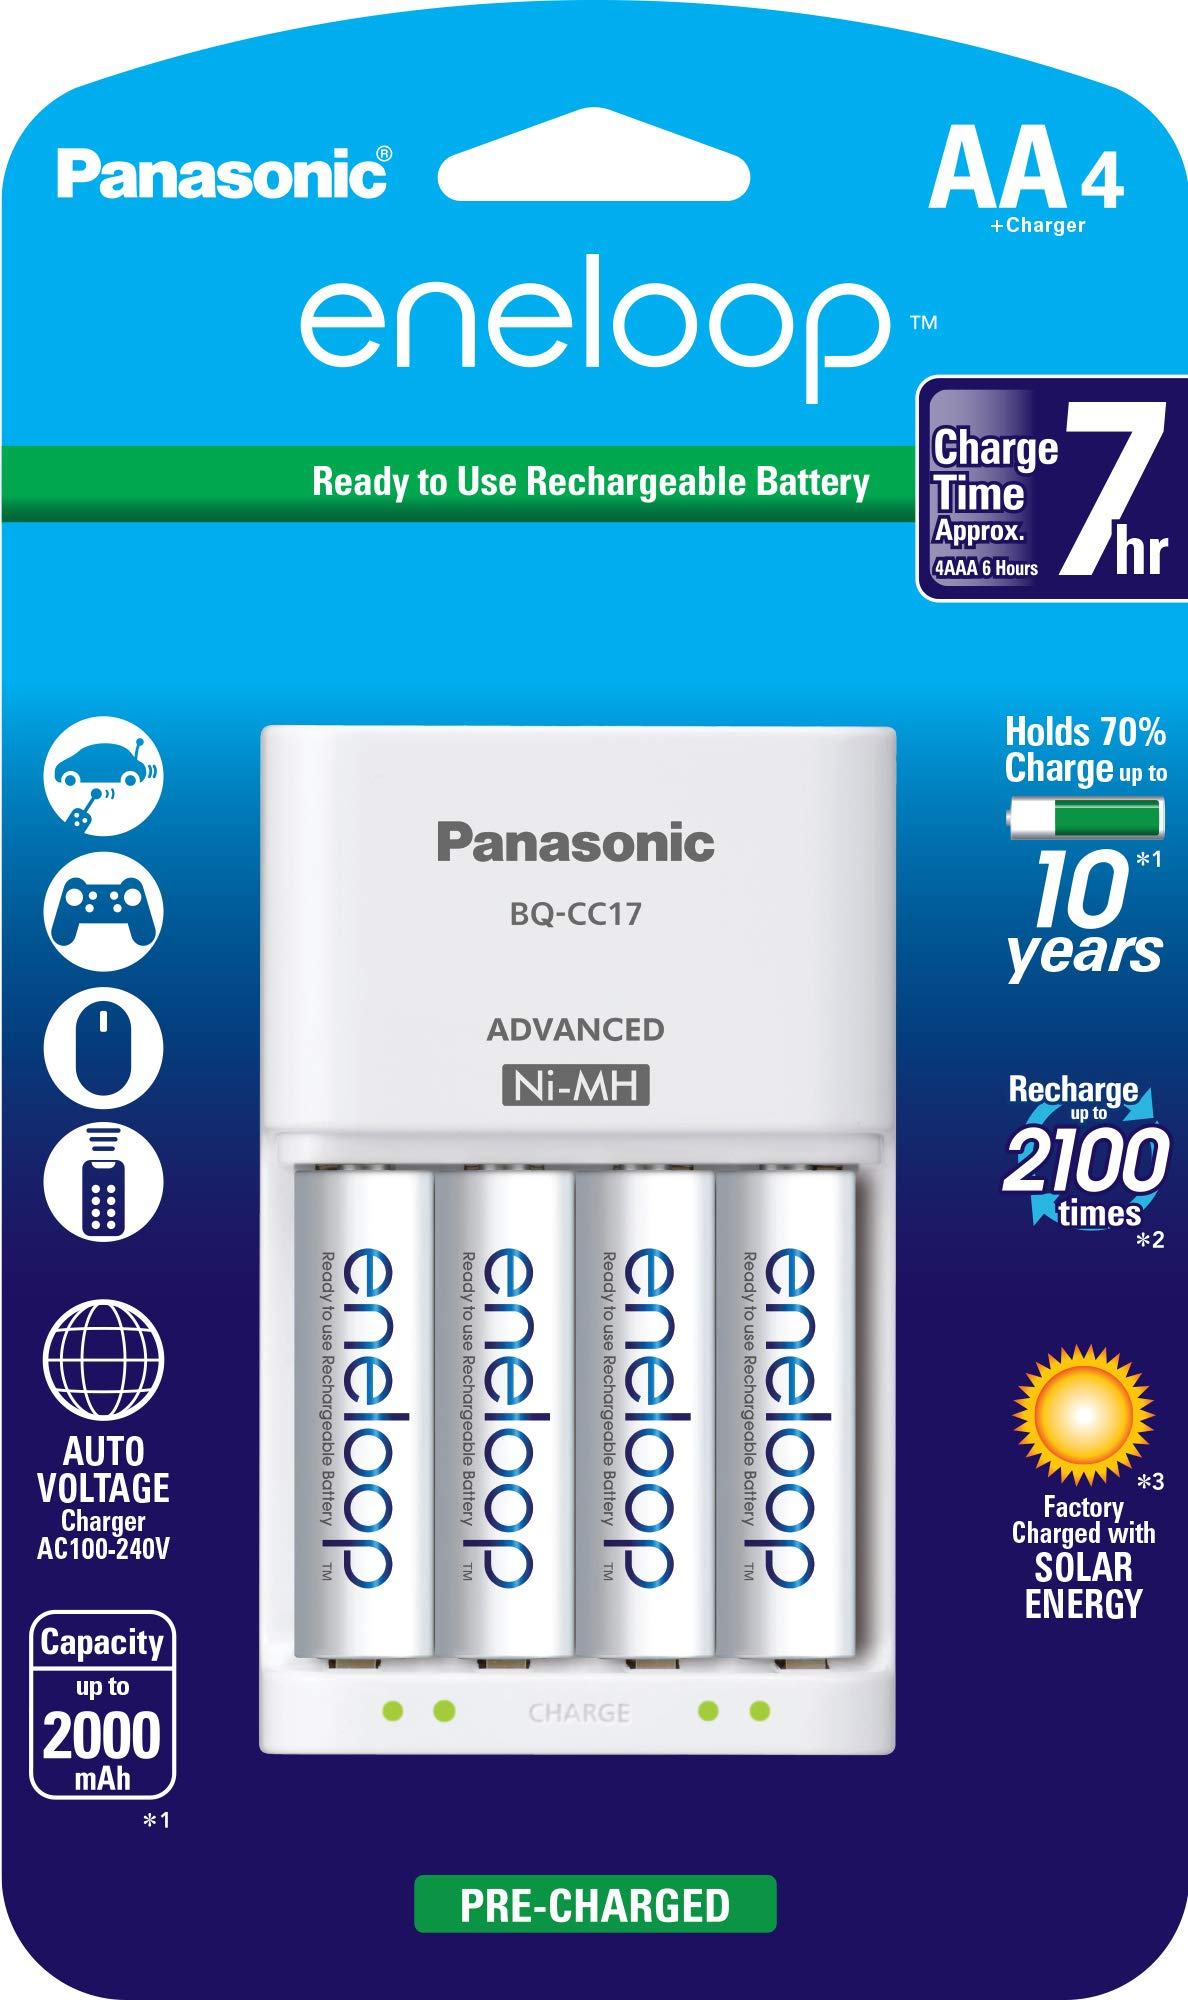 Panasonic K-KJ17MCA4BA Advanced Individual Cell Battery Charger Pack with 4 AA eneloop 2100 Cycle Rechargeable Batteries by eneloop